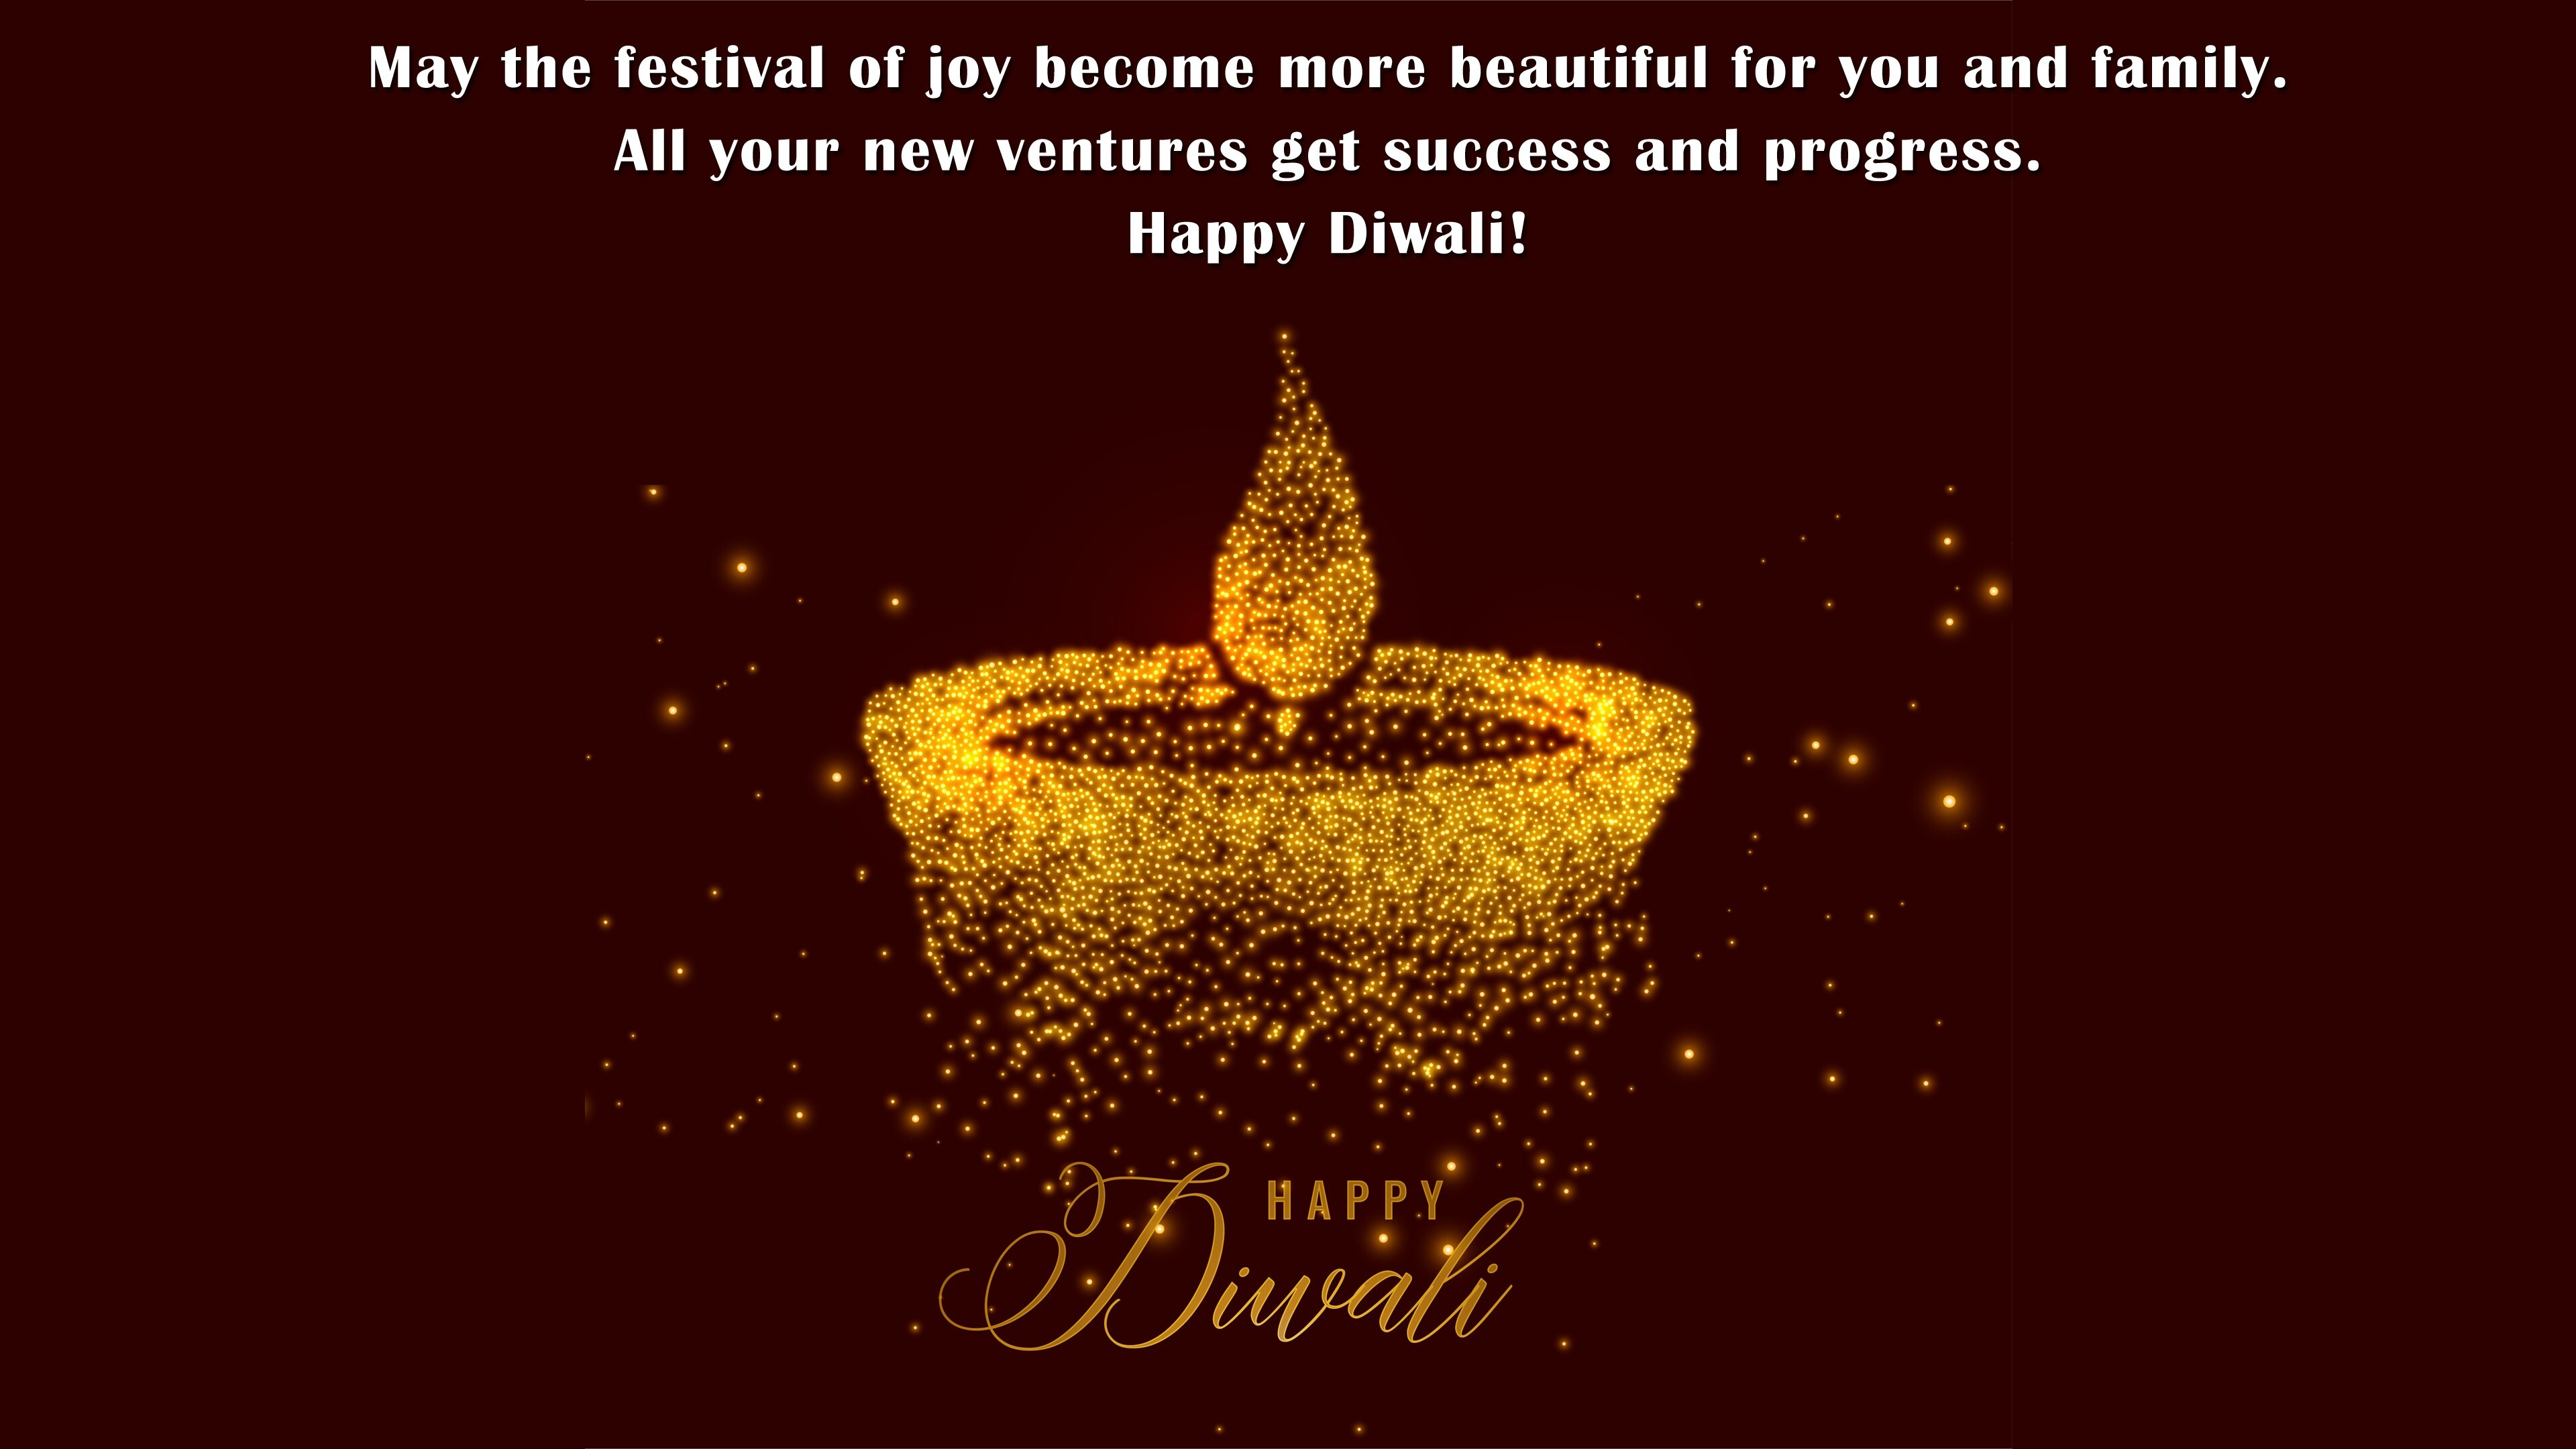 Happy Diwali Best Wishes 4k Wallpapers Hd Wallpapers